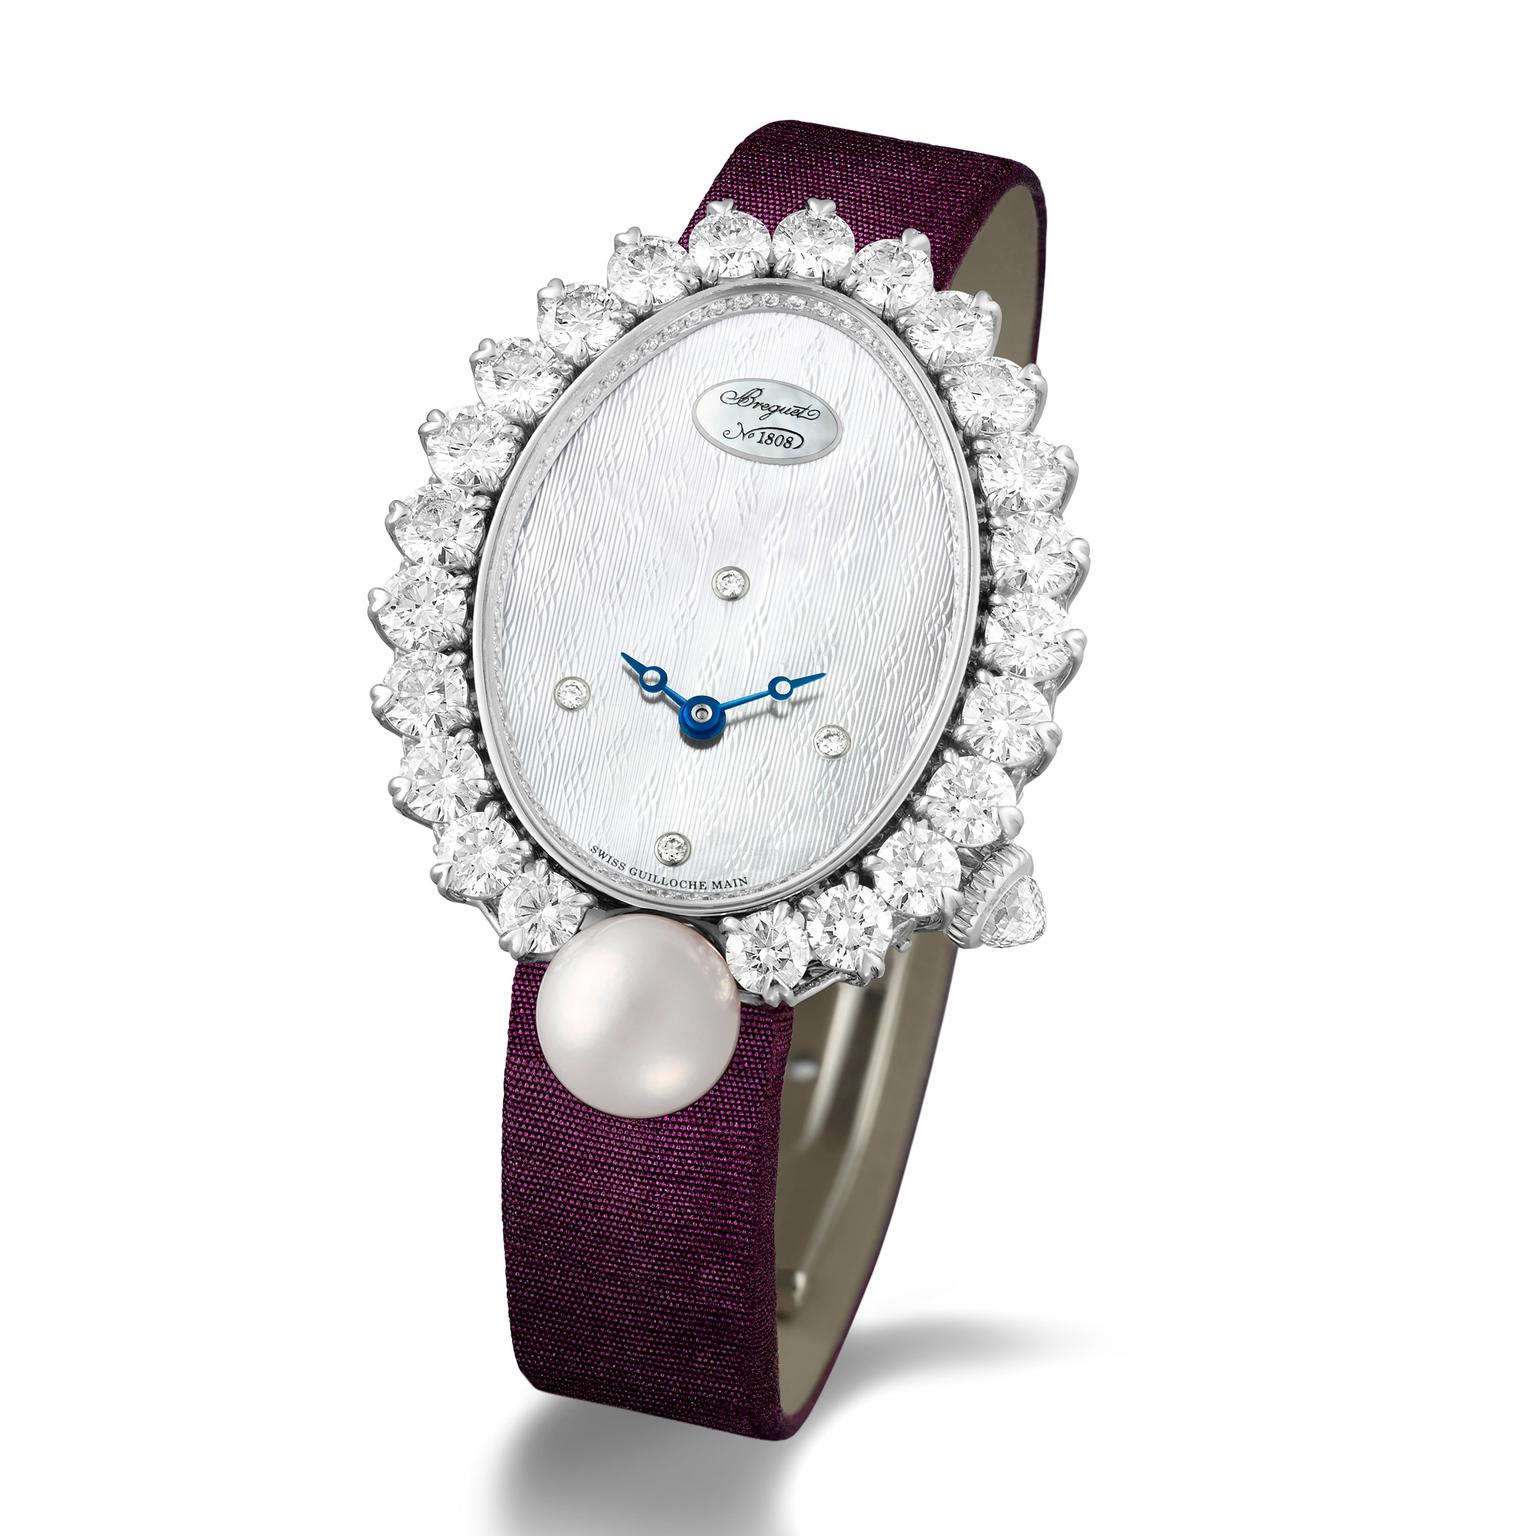 Breguet Perles Imperiales watch